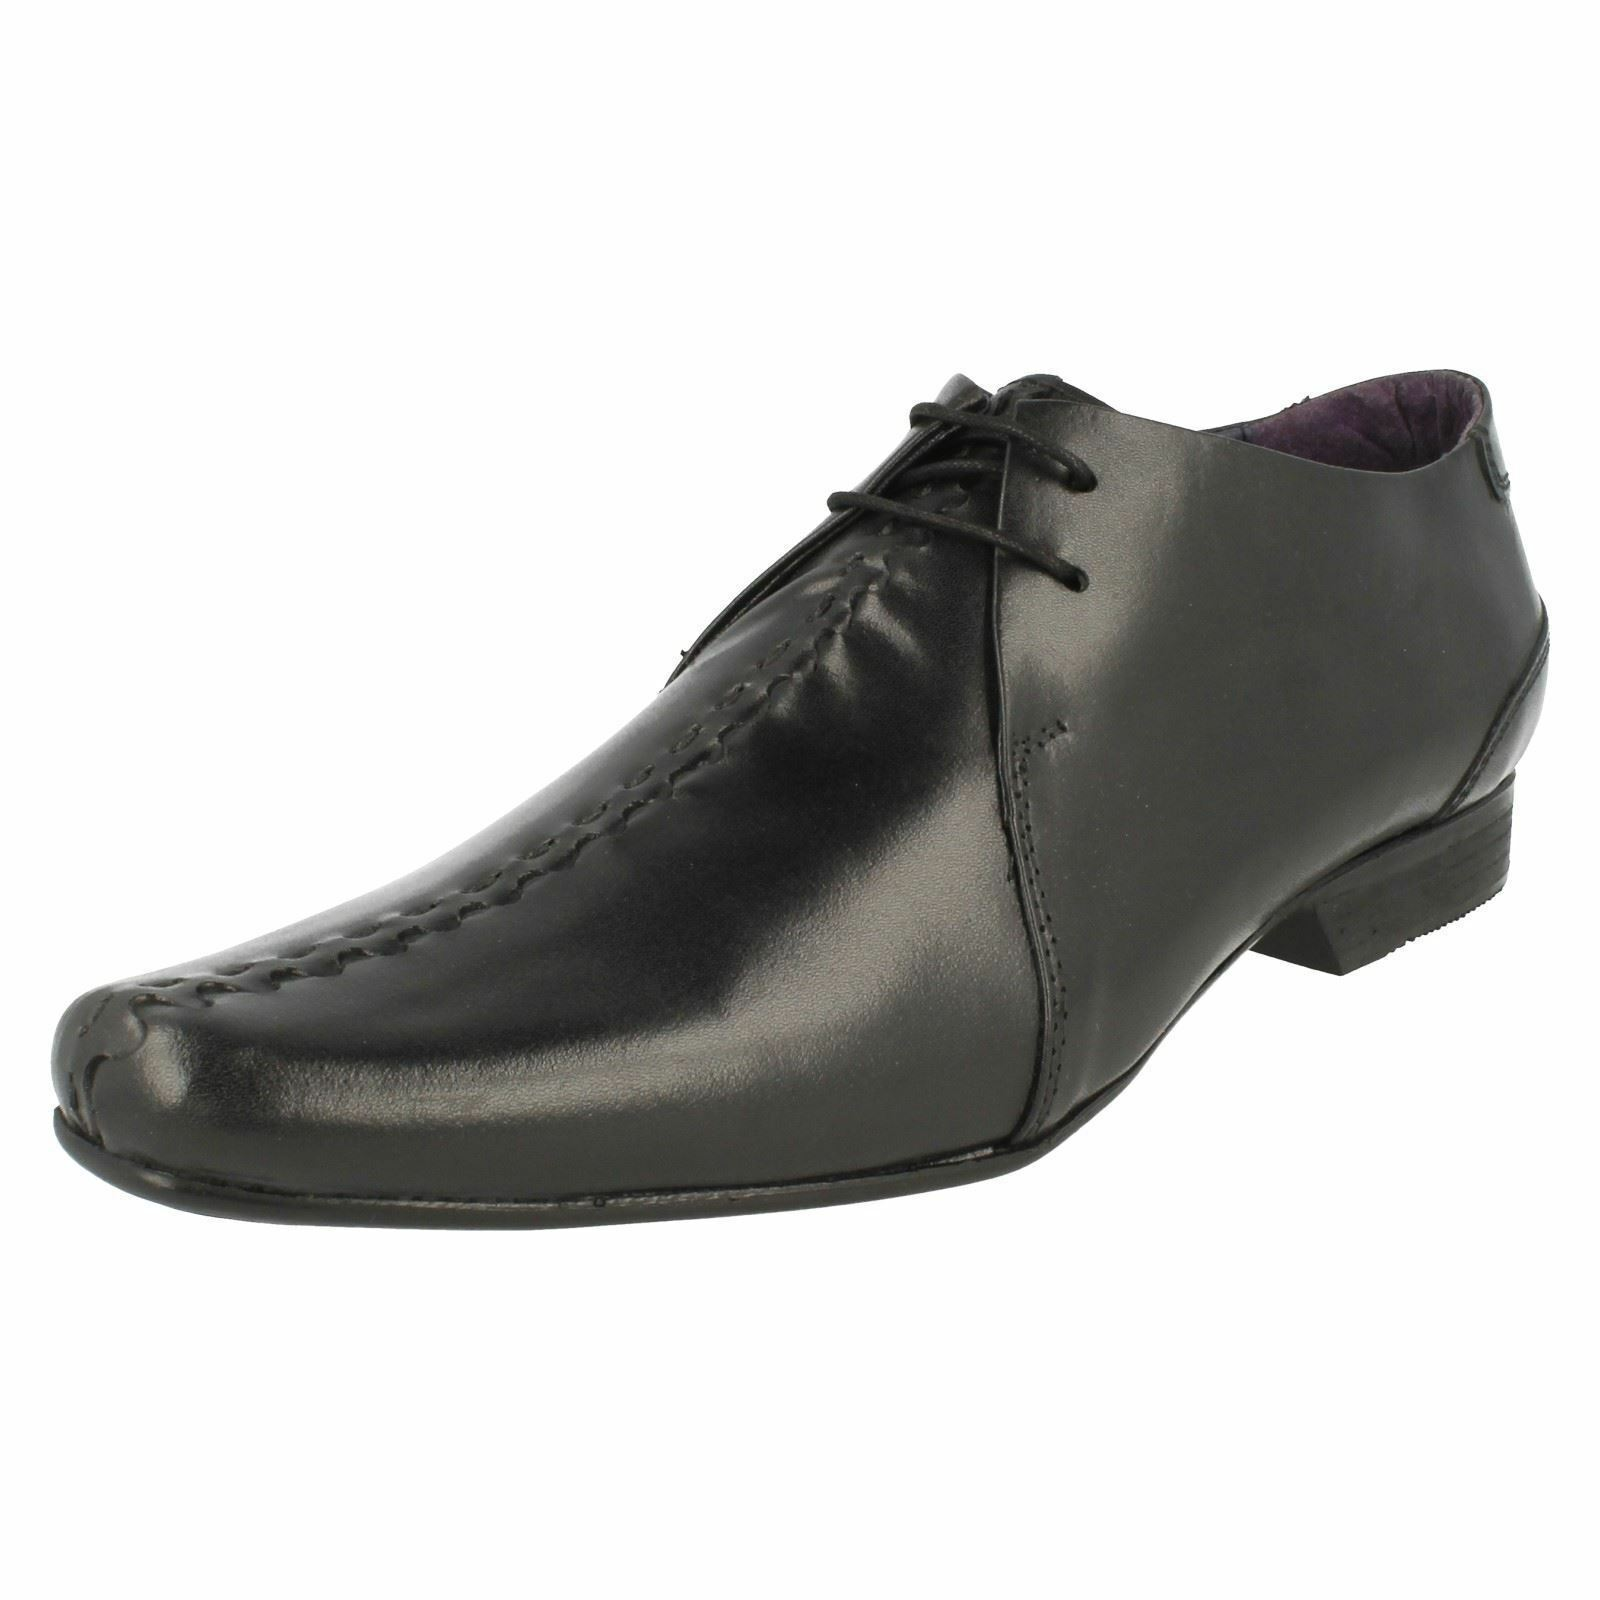 new style a7a8a 0f508 lsip Rouge 01b 01b 01b hombres negro con encaje, zapato informels (r26b) (